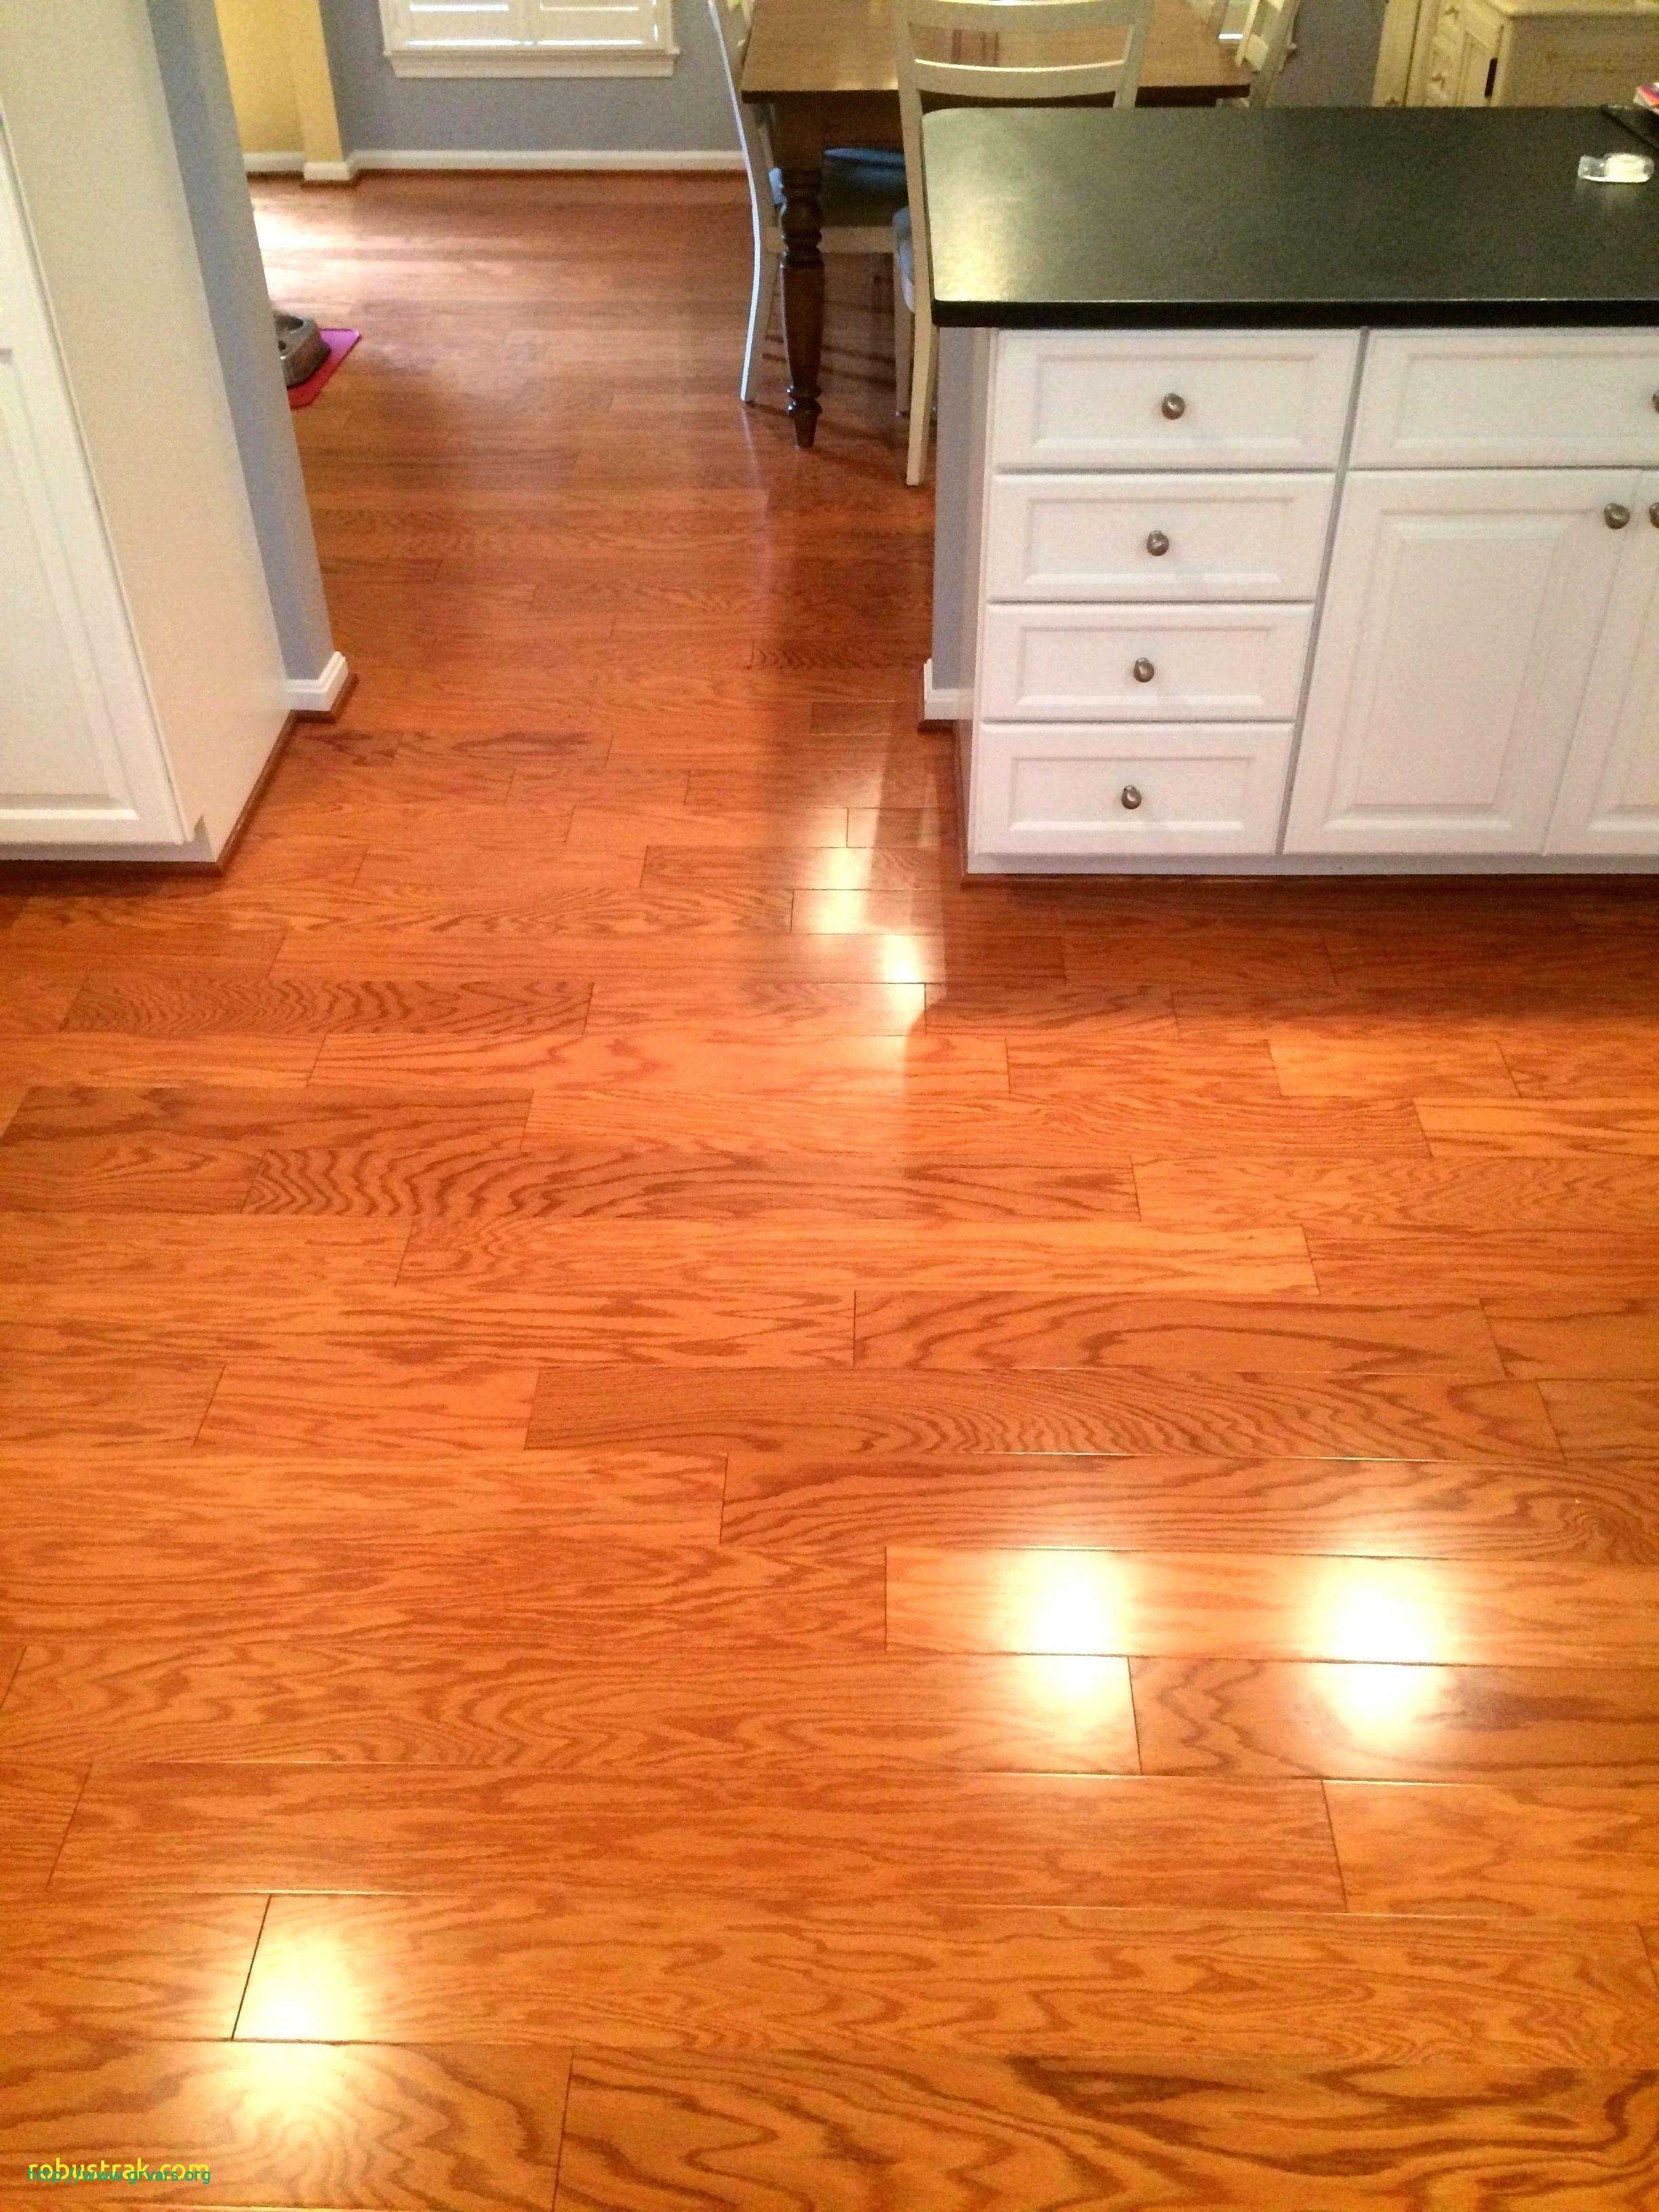 apple cider vinegar to clean hardwood floors of 23 frais how much is a hardwood floor ideas blog throughout hardwood floors in the kitchen fresh where to buy hardwood flooring inspirational 0d grace place barnegat